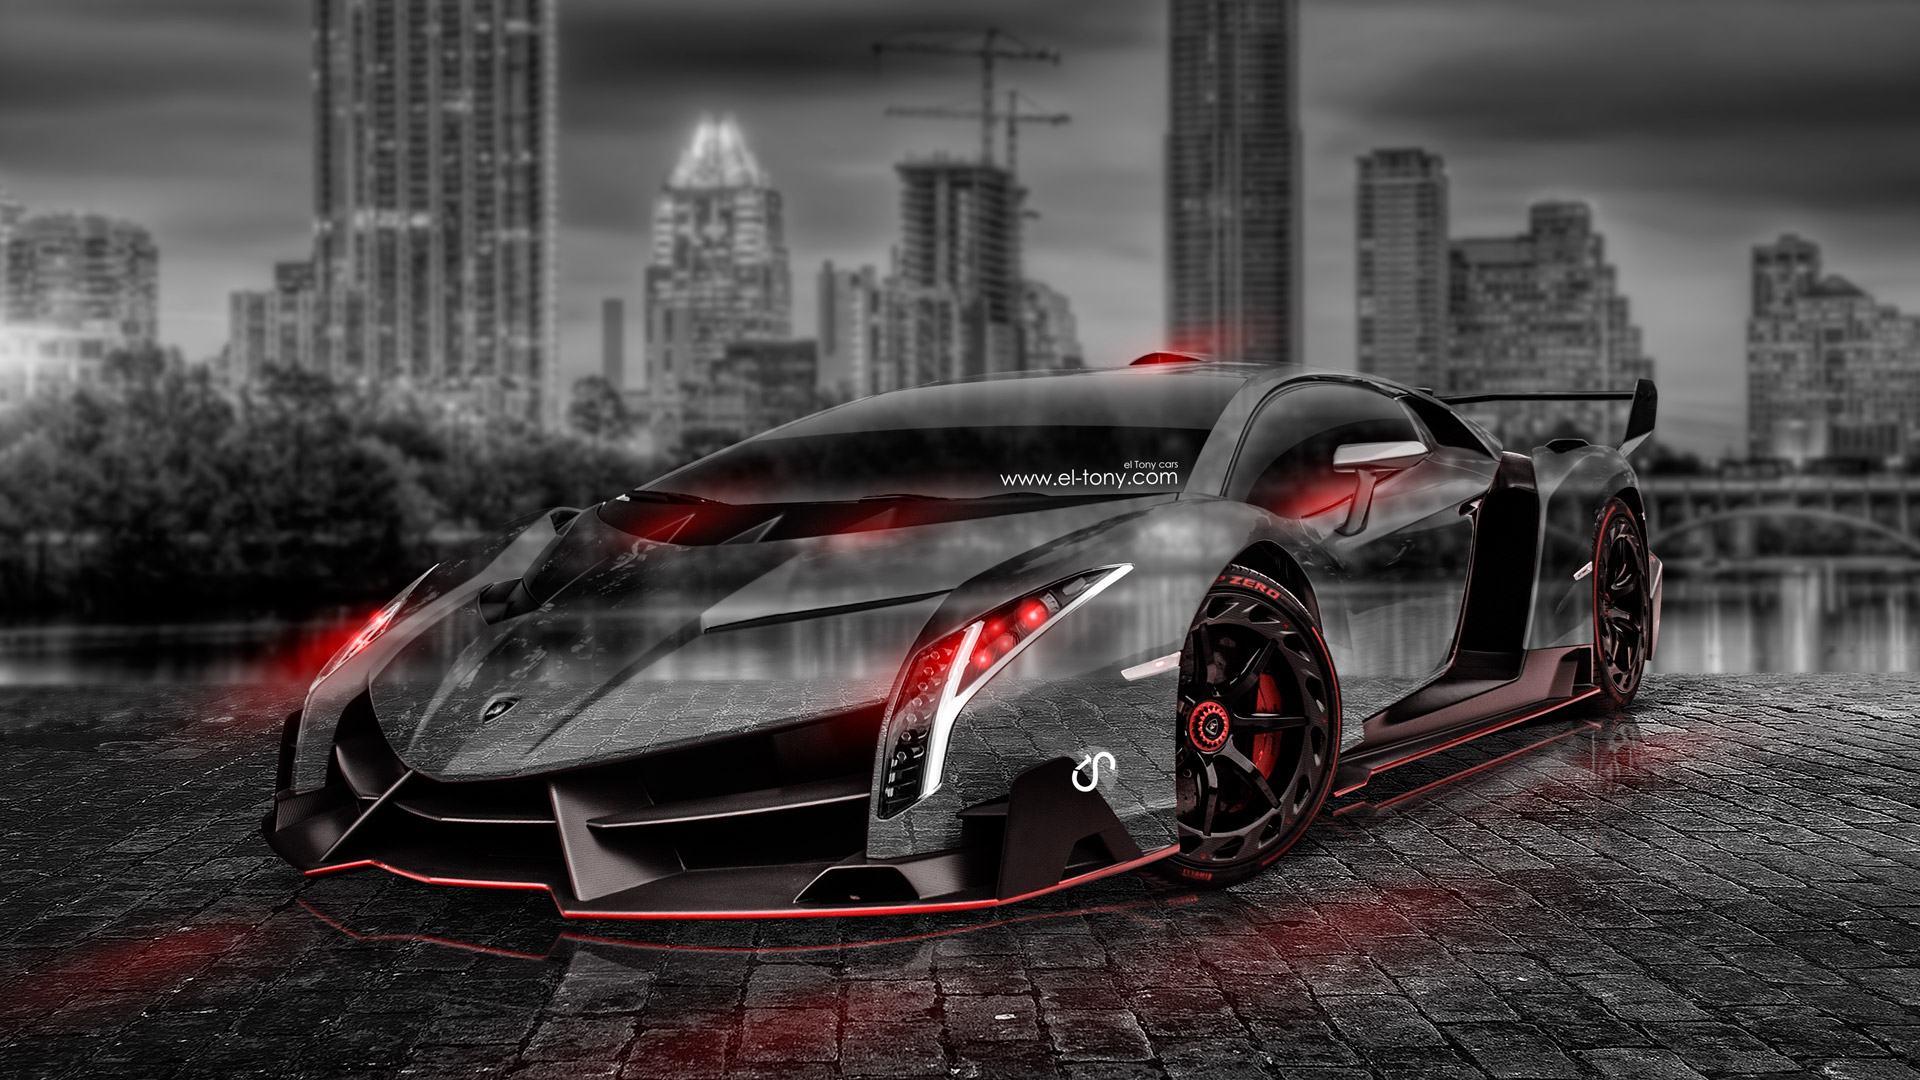 Merveilleux ... Lamborghini Veneno Crystal City Car 2014 Photoshop Art  ...